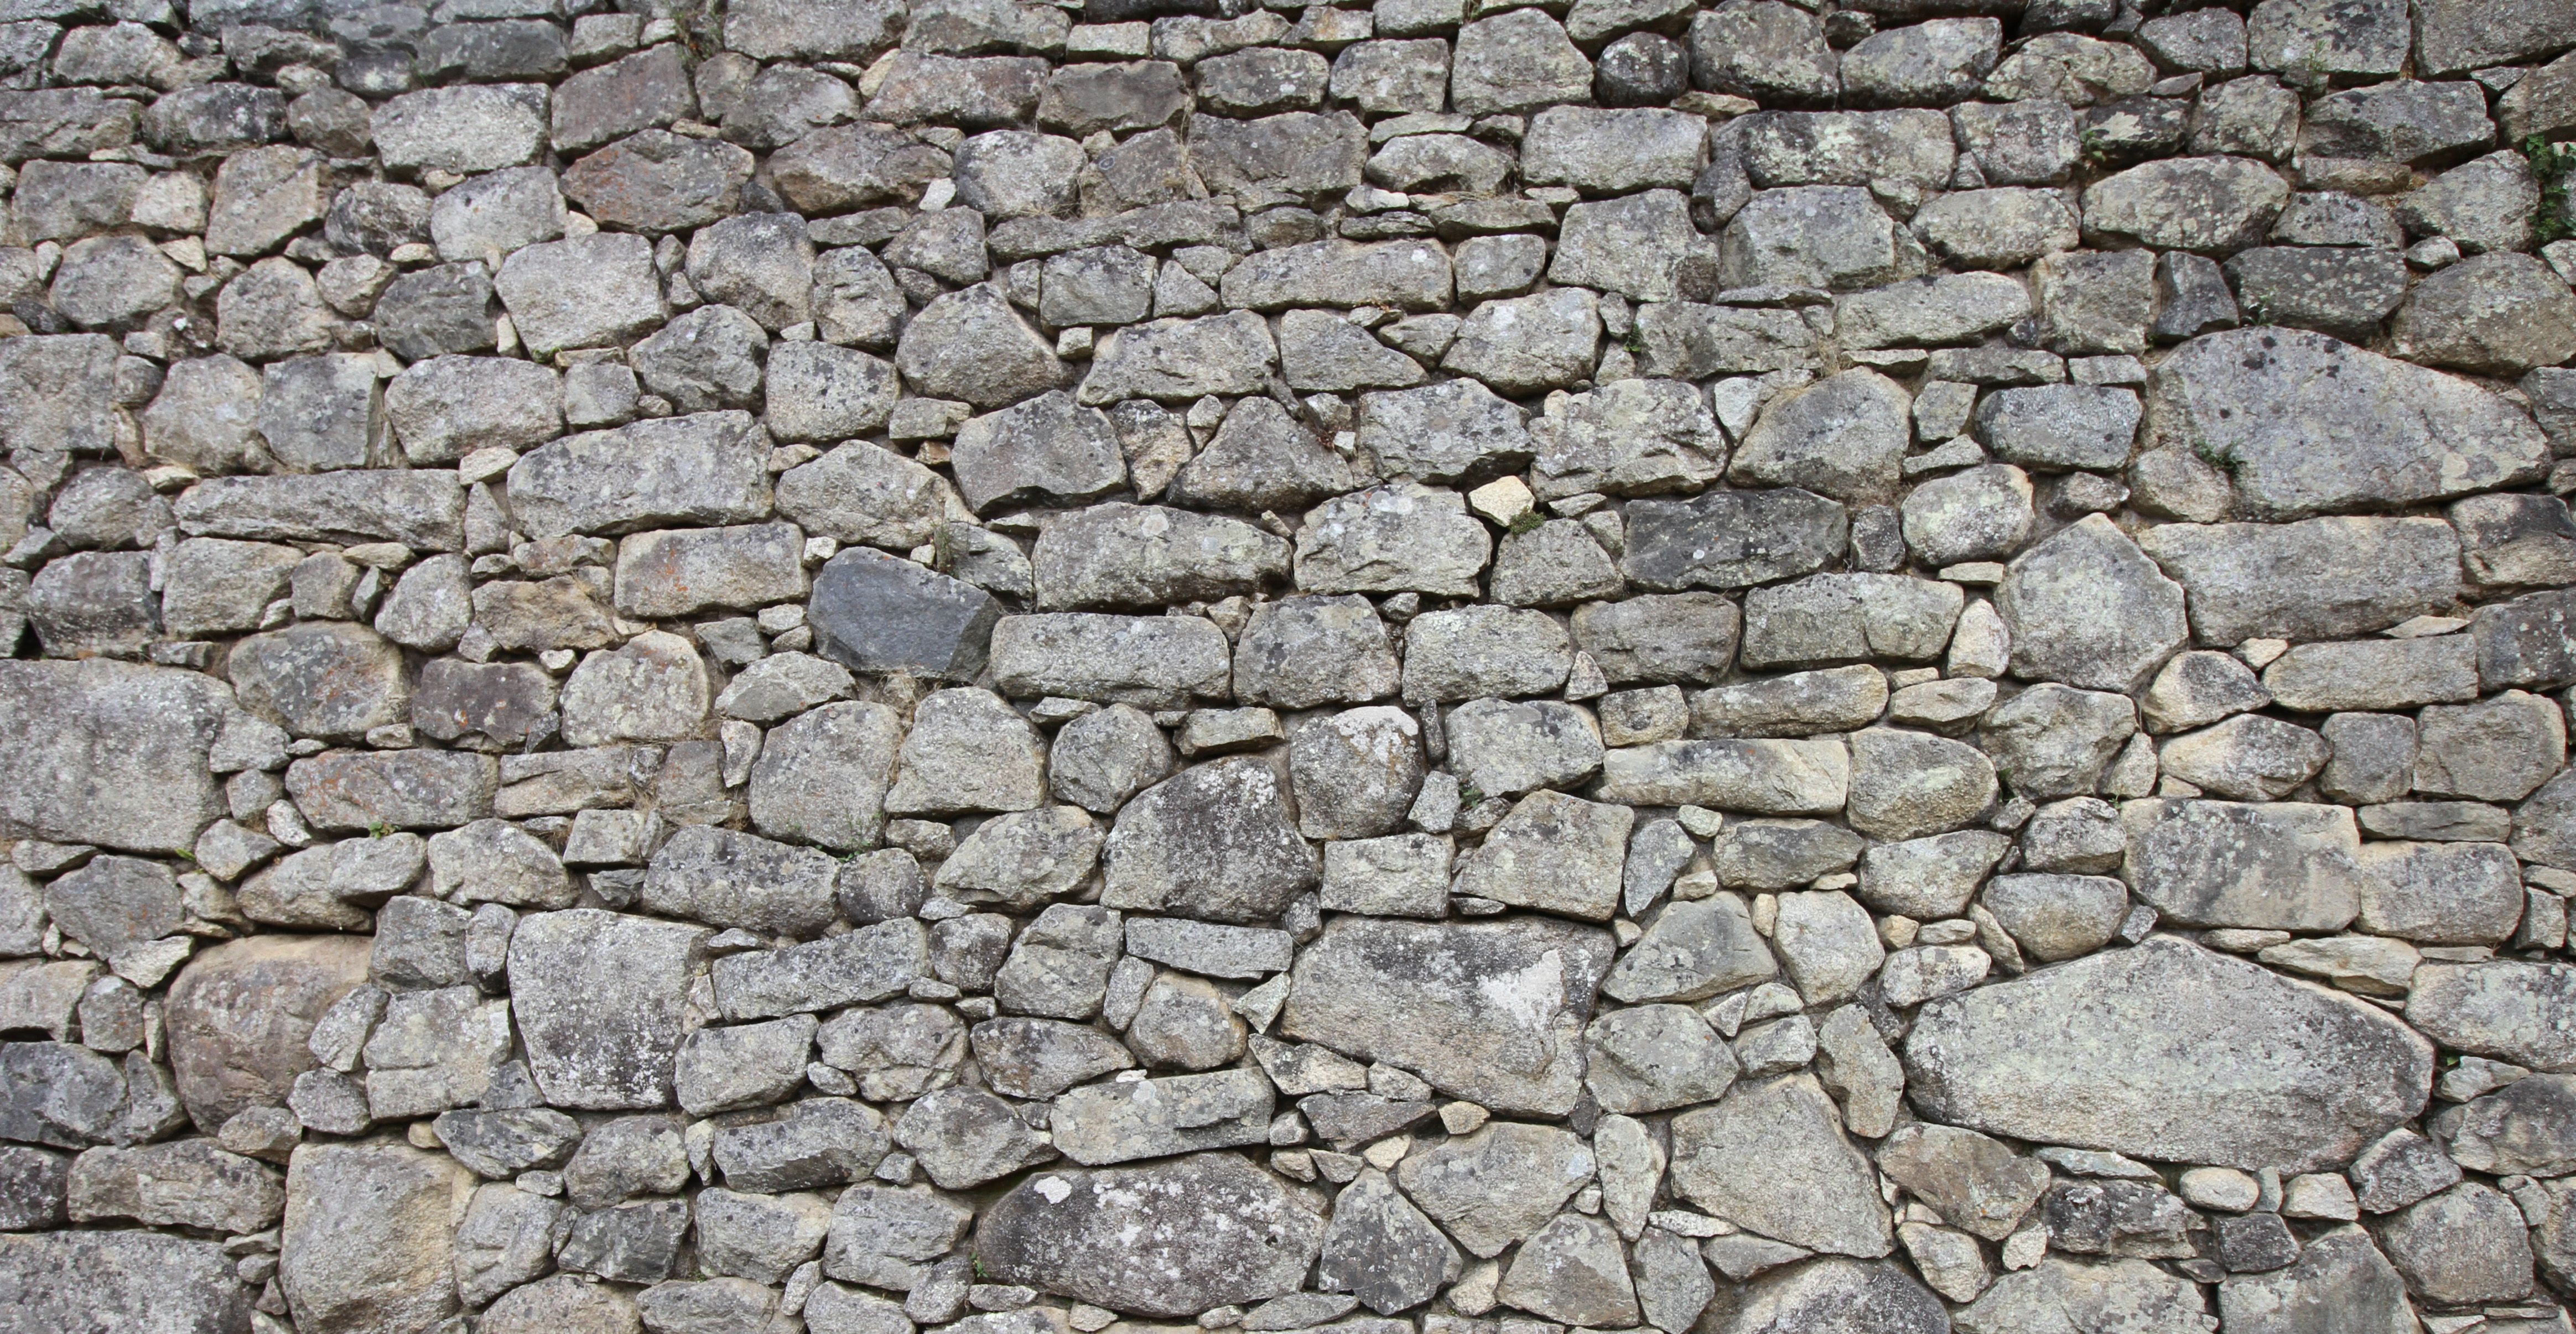 stone wall texture Google Search Rock wall, Textured